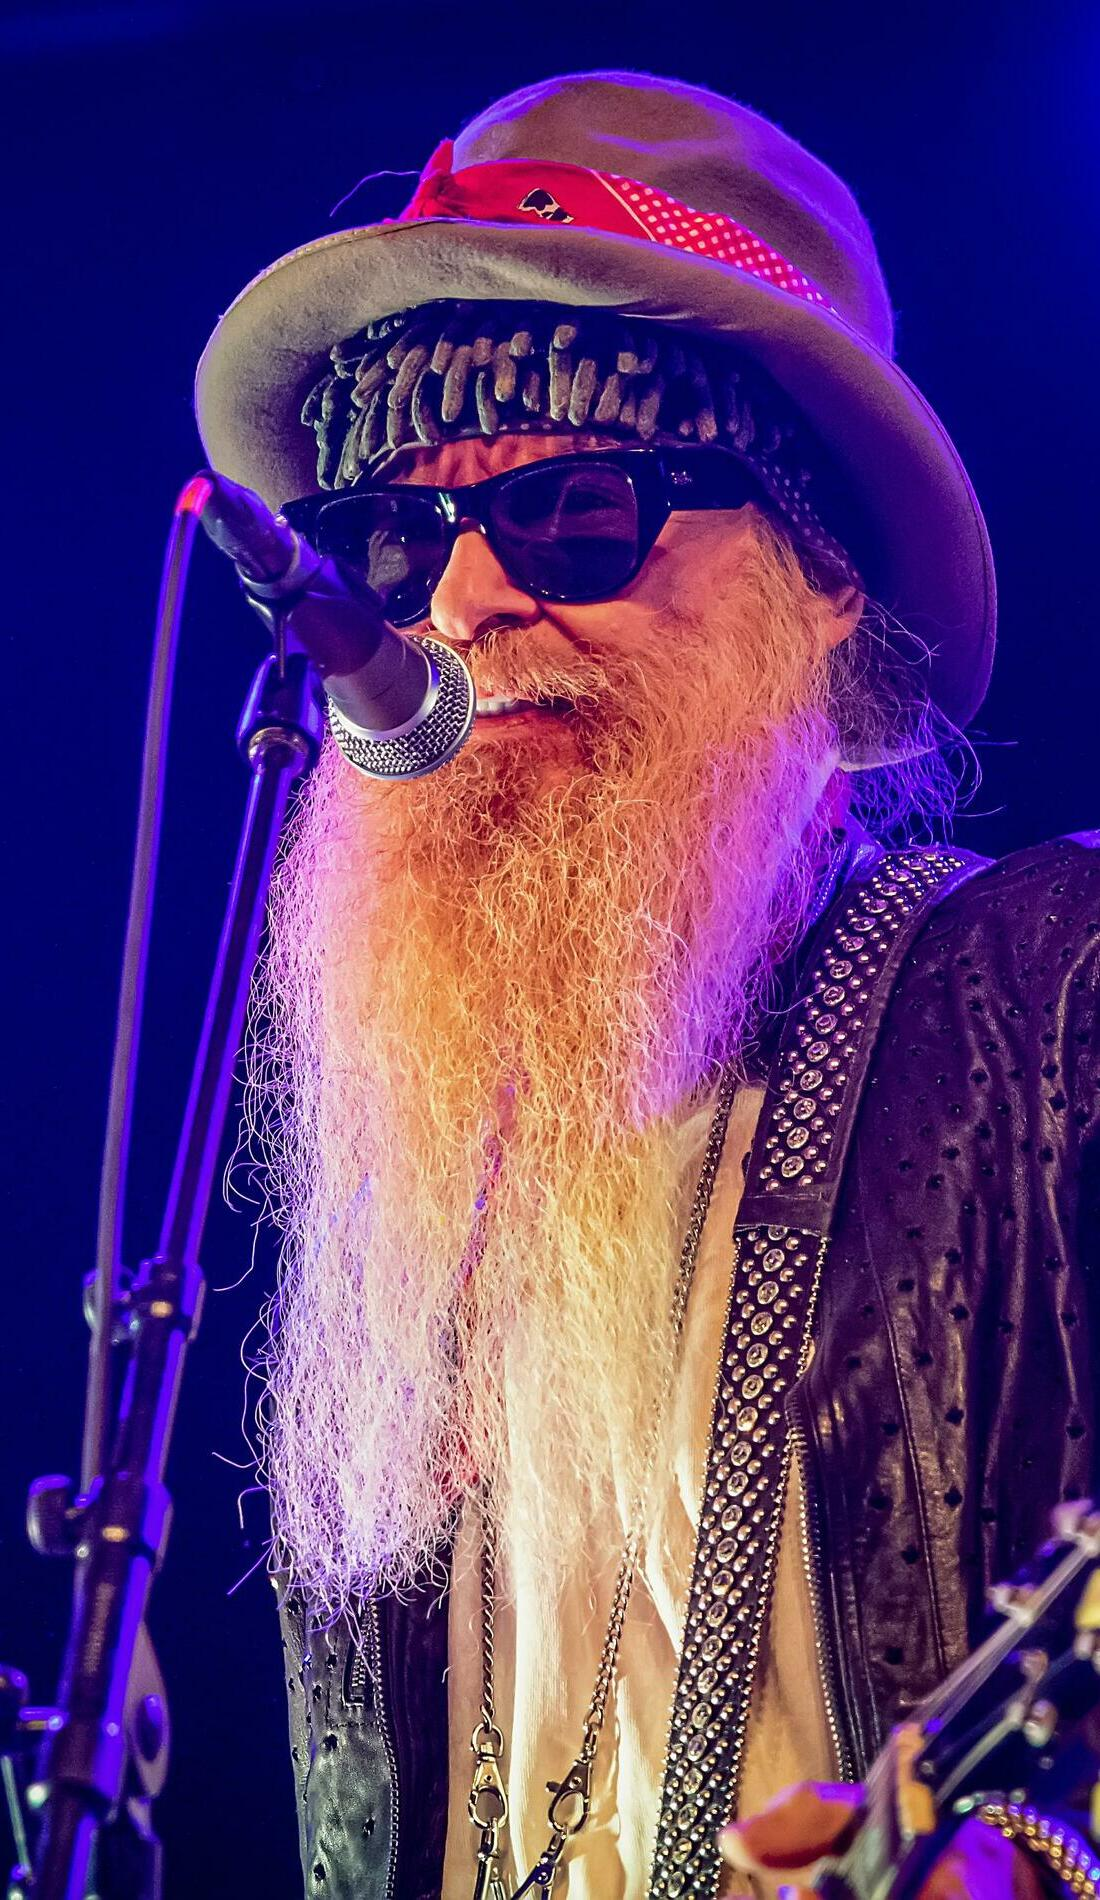 A Billy Gibbons live event